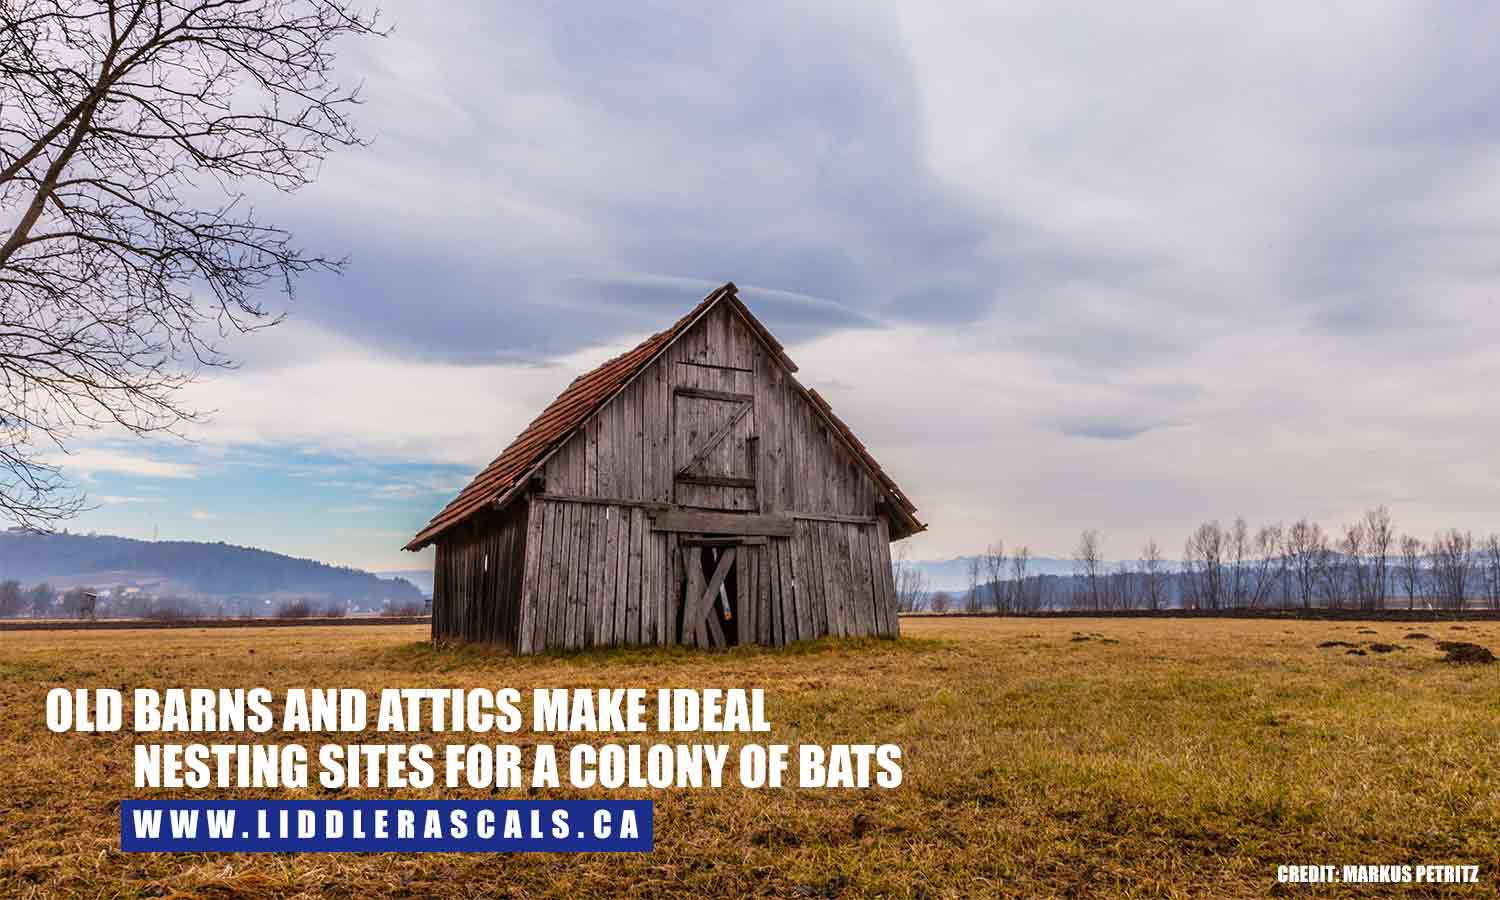 Old barns and attics make ideal nesting sites for a colony of bats